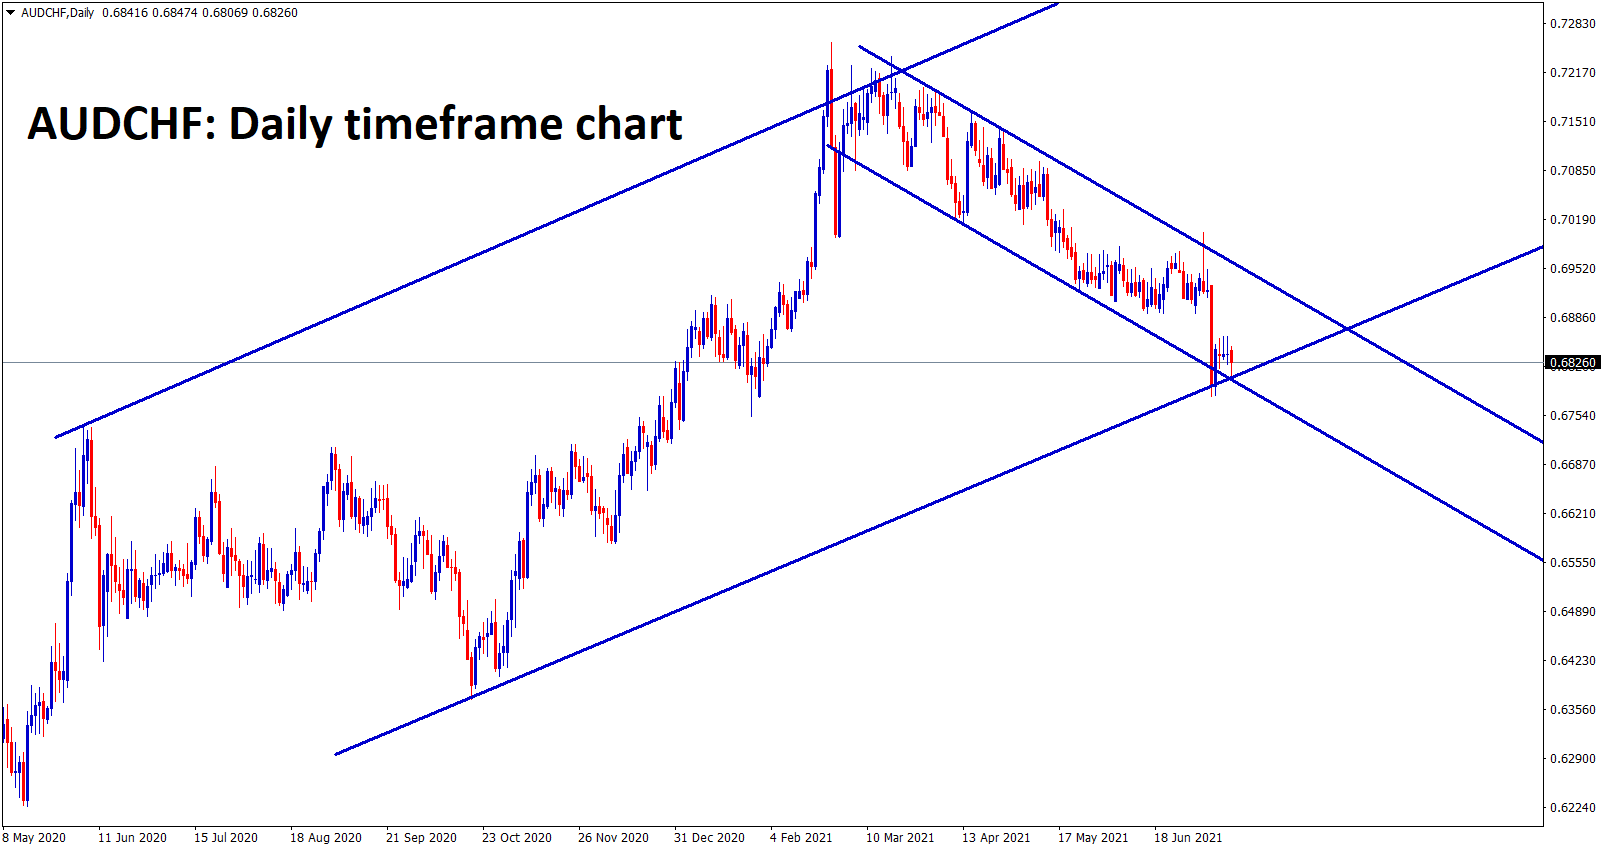 AUDCHF at the low level in both Ascending and Descending channels